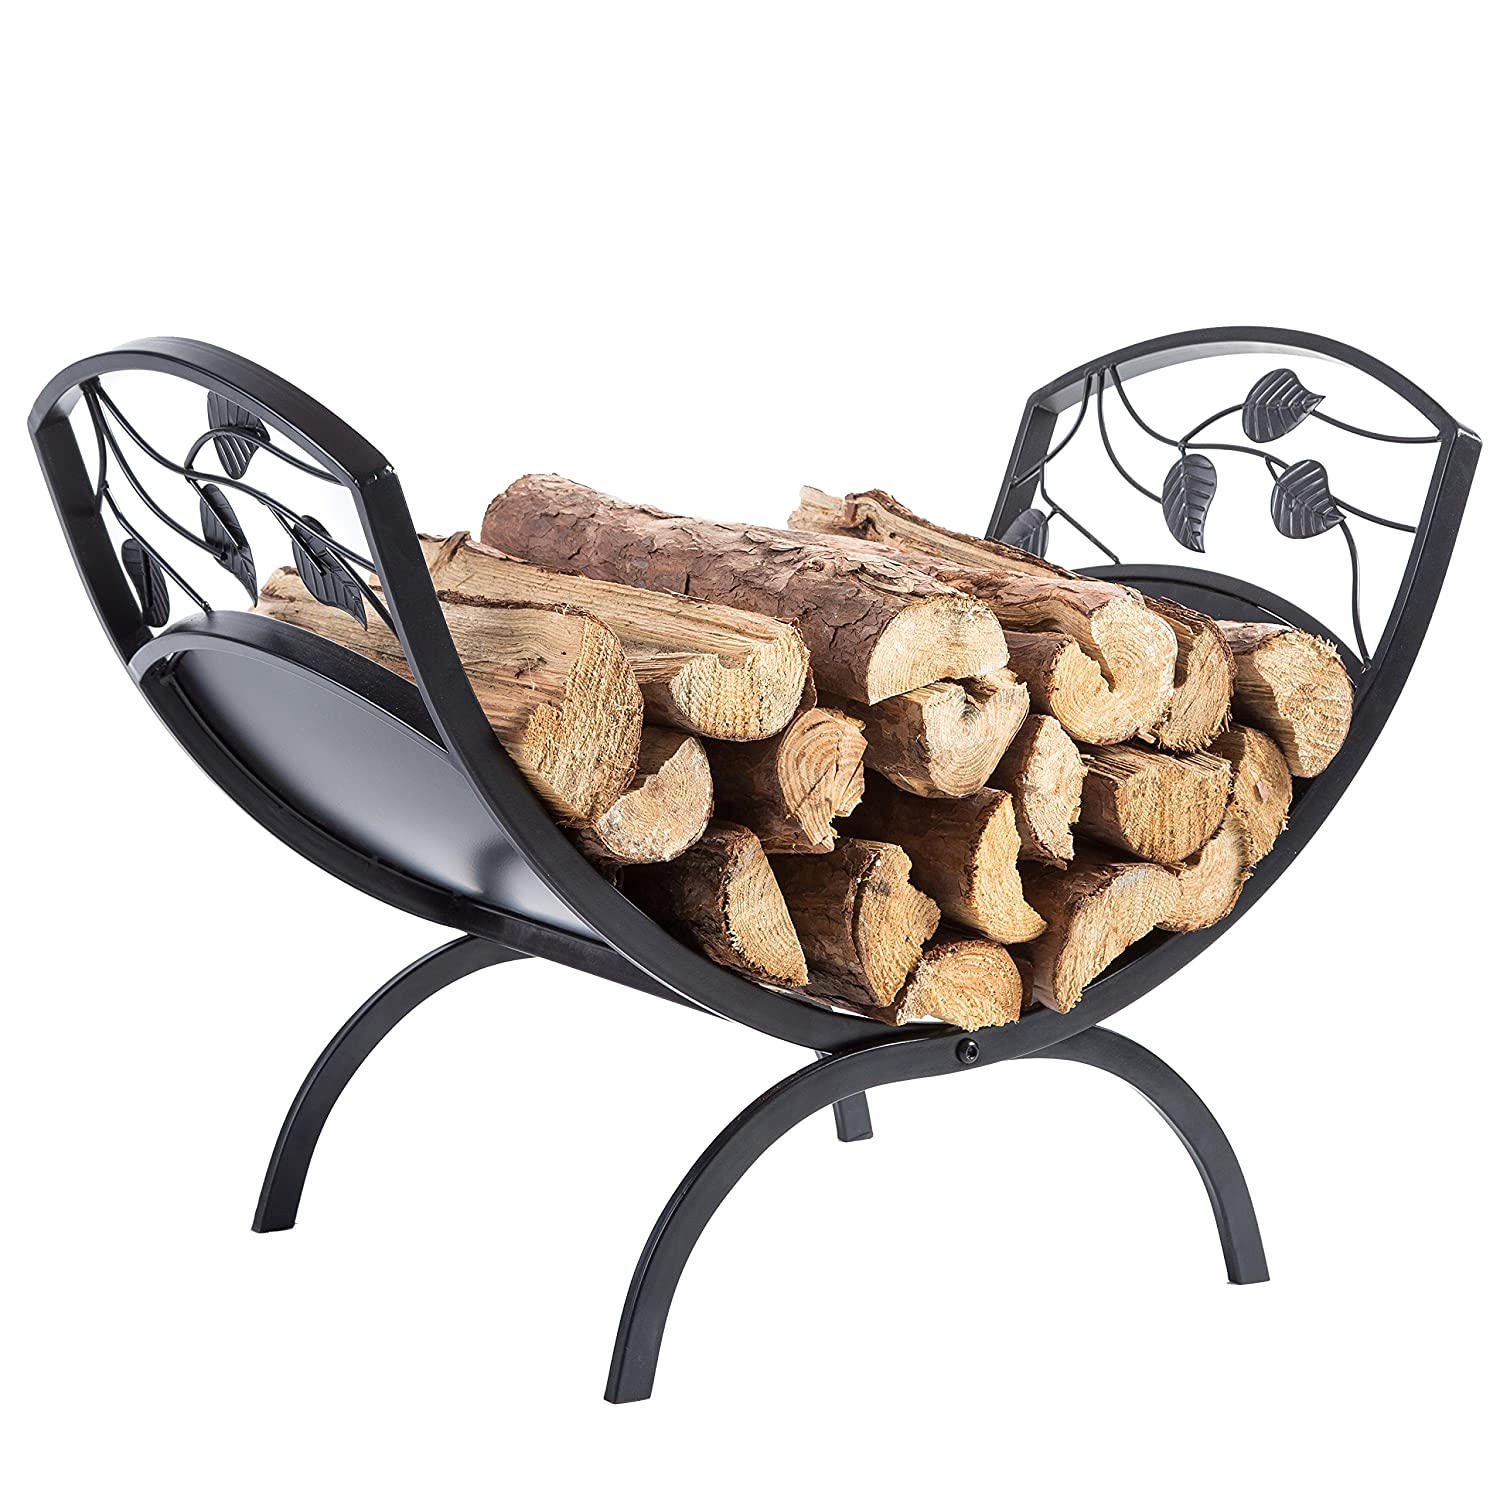 Decorative Metal Leaf & Vine Design Hearthside Firewood Log Storage Rack Holder MyGift